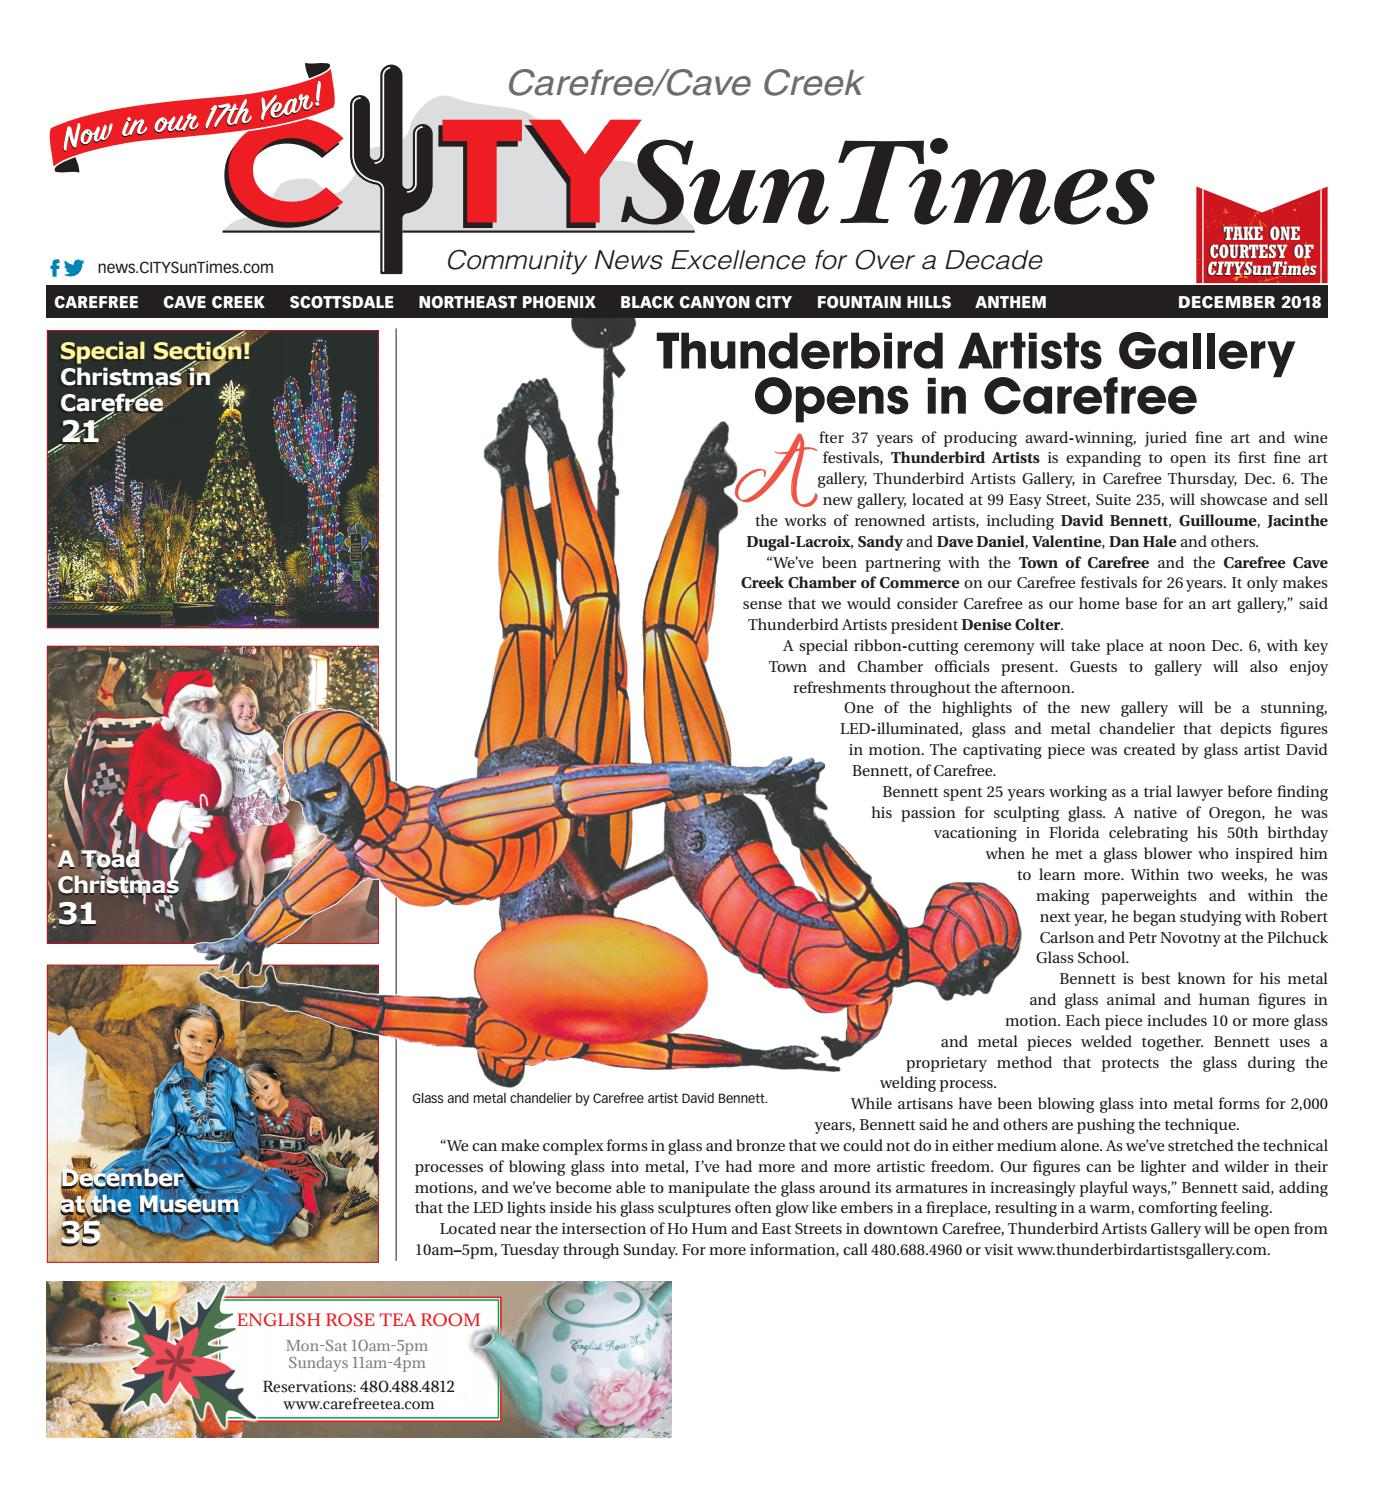 Carefree Cave Creek December 2018 Issue of CITYSunTimes by